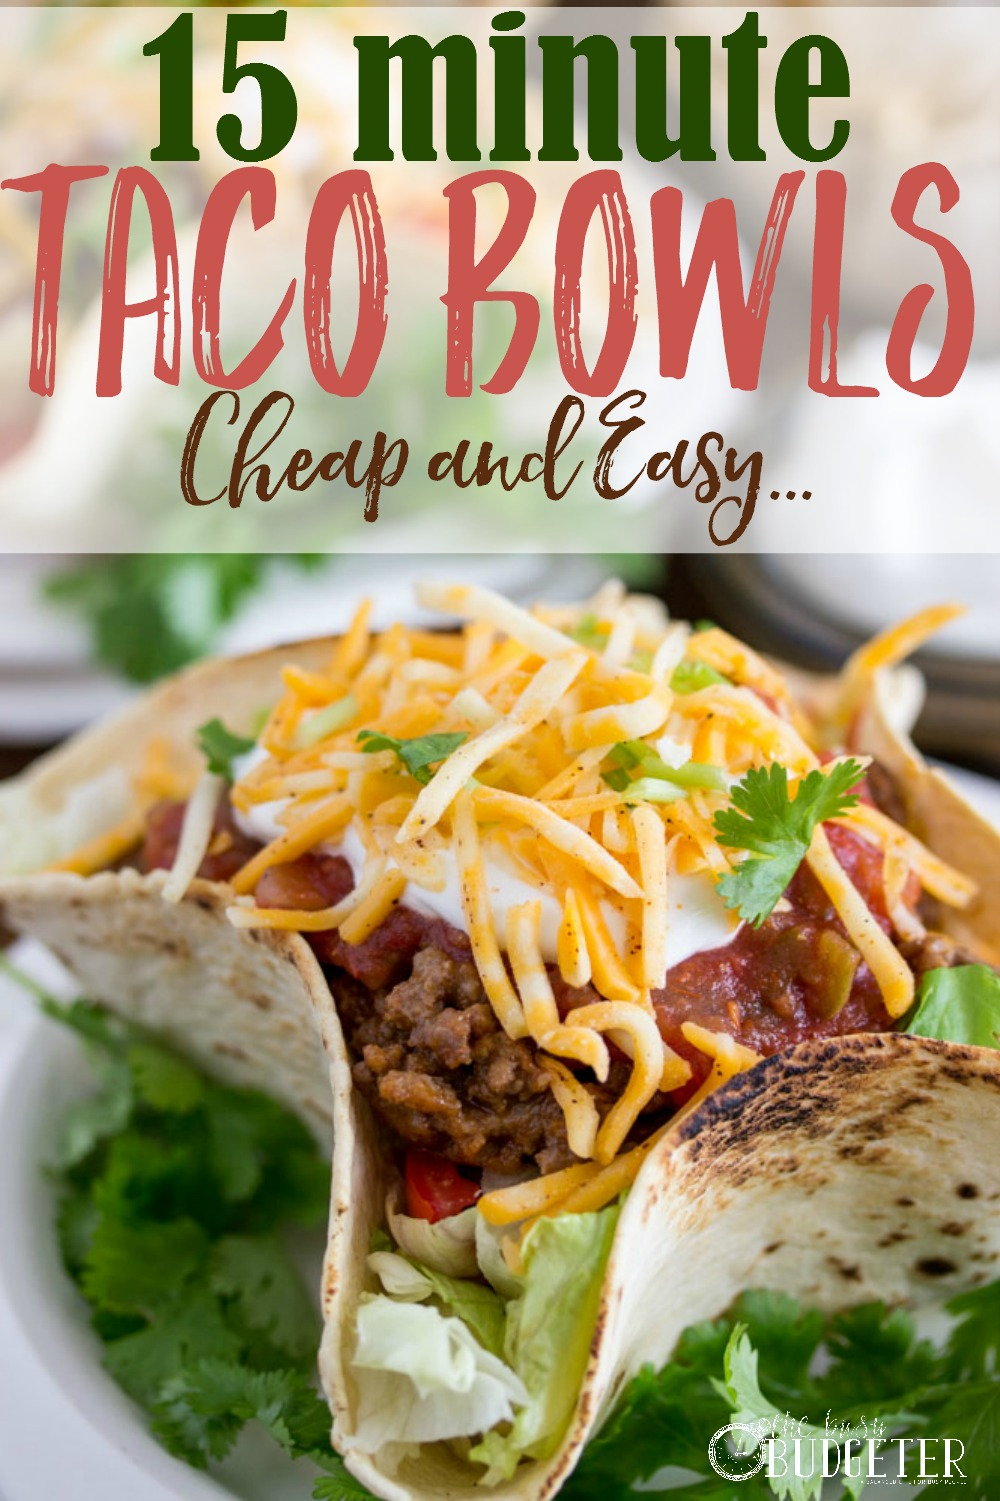 15-minute-taco-bowls- Thank you for this amazing taco bowl recipe that my kids went crazy over! And they were ready and on the table in 15 minutes!